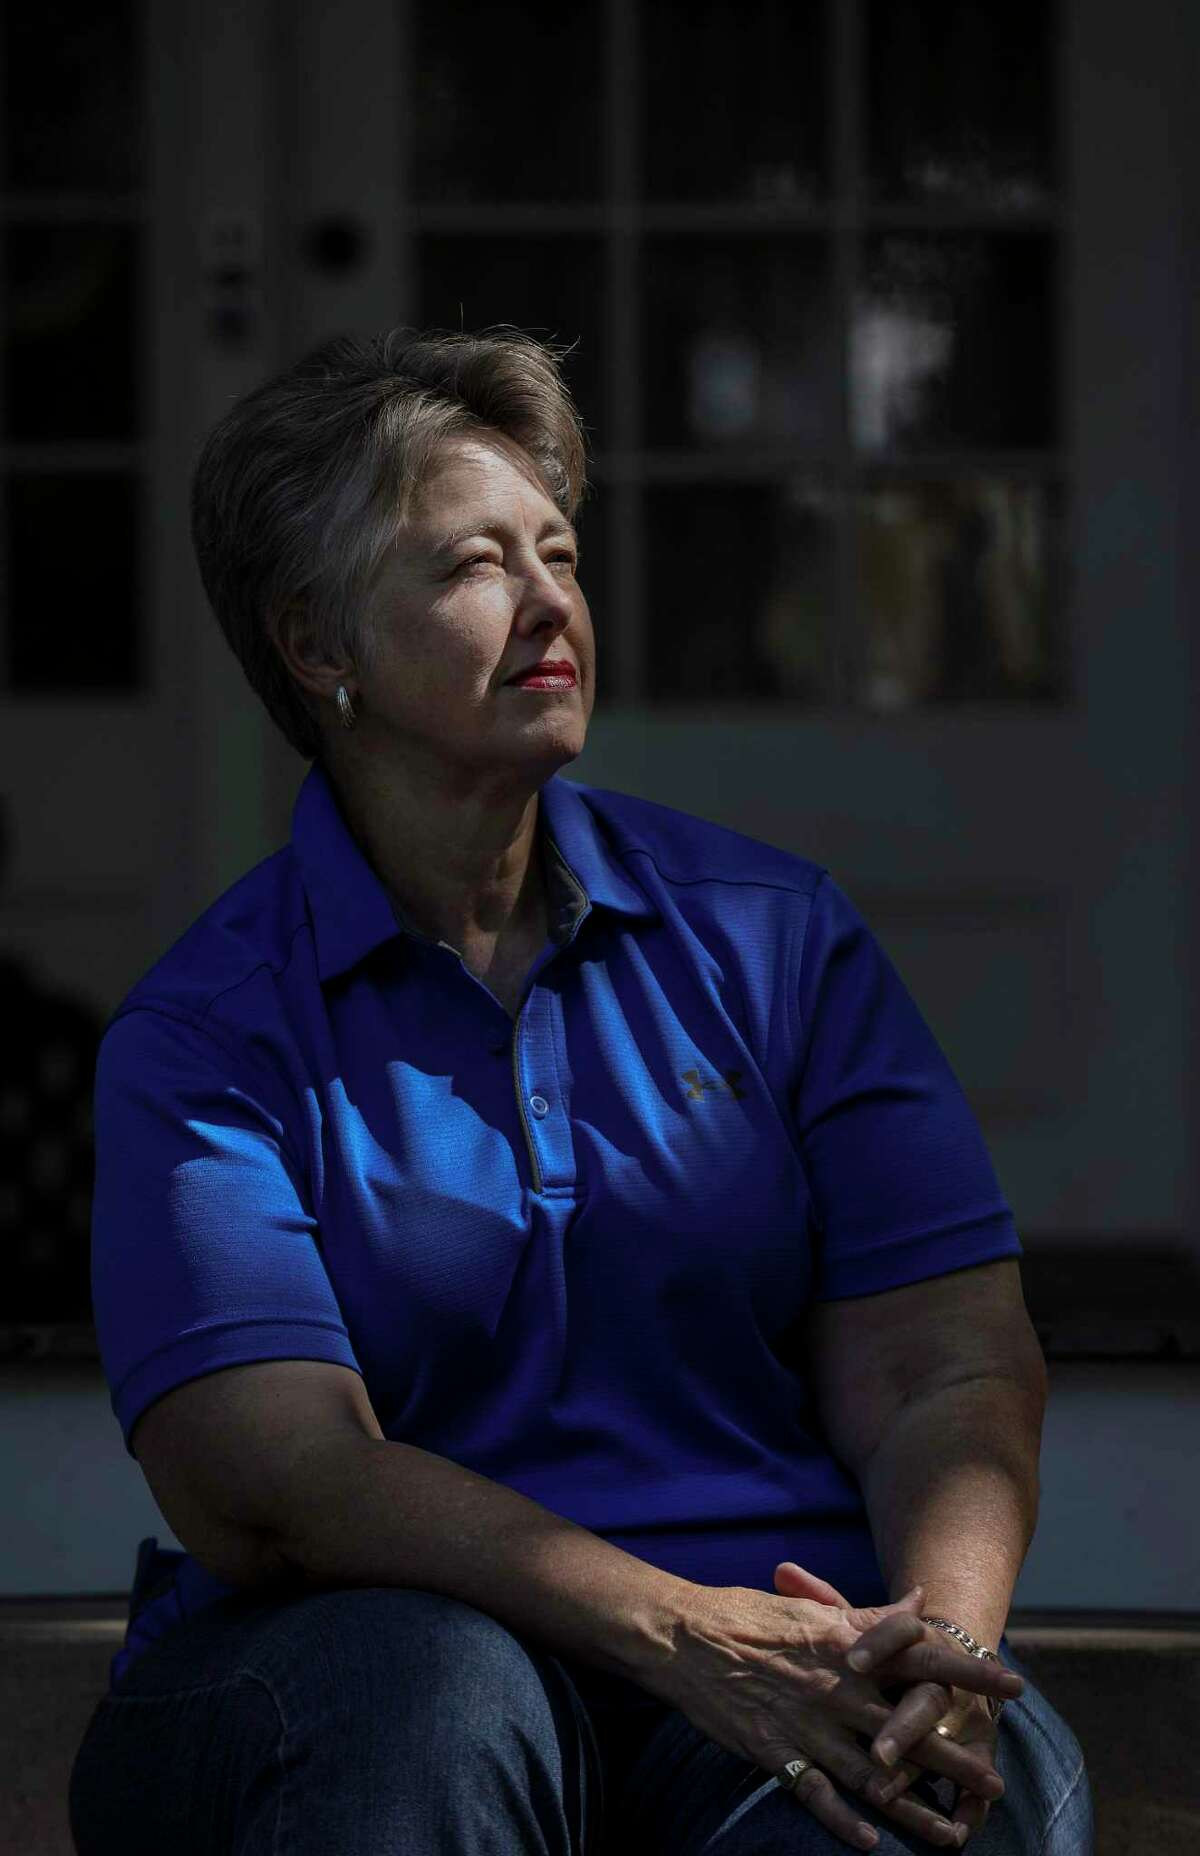 """""""You have the law on your side, but it's only as good as the people who enforce it, and we still don't completely have the law on our side,"""" said Annise Parker, former Houston mayor, as she posed for a portrait Monday, June 15, 2020, in Houston. Parker said she thought the Supreme Court ruling today didn't go far enough to protect the rights of LGBTQ people, because it only protects them from workplace discrimination. Parker tried to pass the Houston Equal Rights Ordinance, called HERO, while mayor in 2015. The ordinance would have banned discrimination based not just on gender identity and sexual orientation, but also 13 classes already protected under federal law: sex, race, color, ethnicity, national origin, age, religion, disability, pregnancy and genetic information, as well as family, marital or military status. Voters rejected the ordinance."""